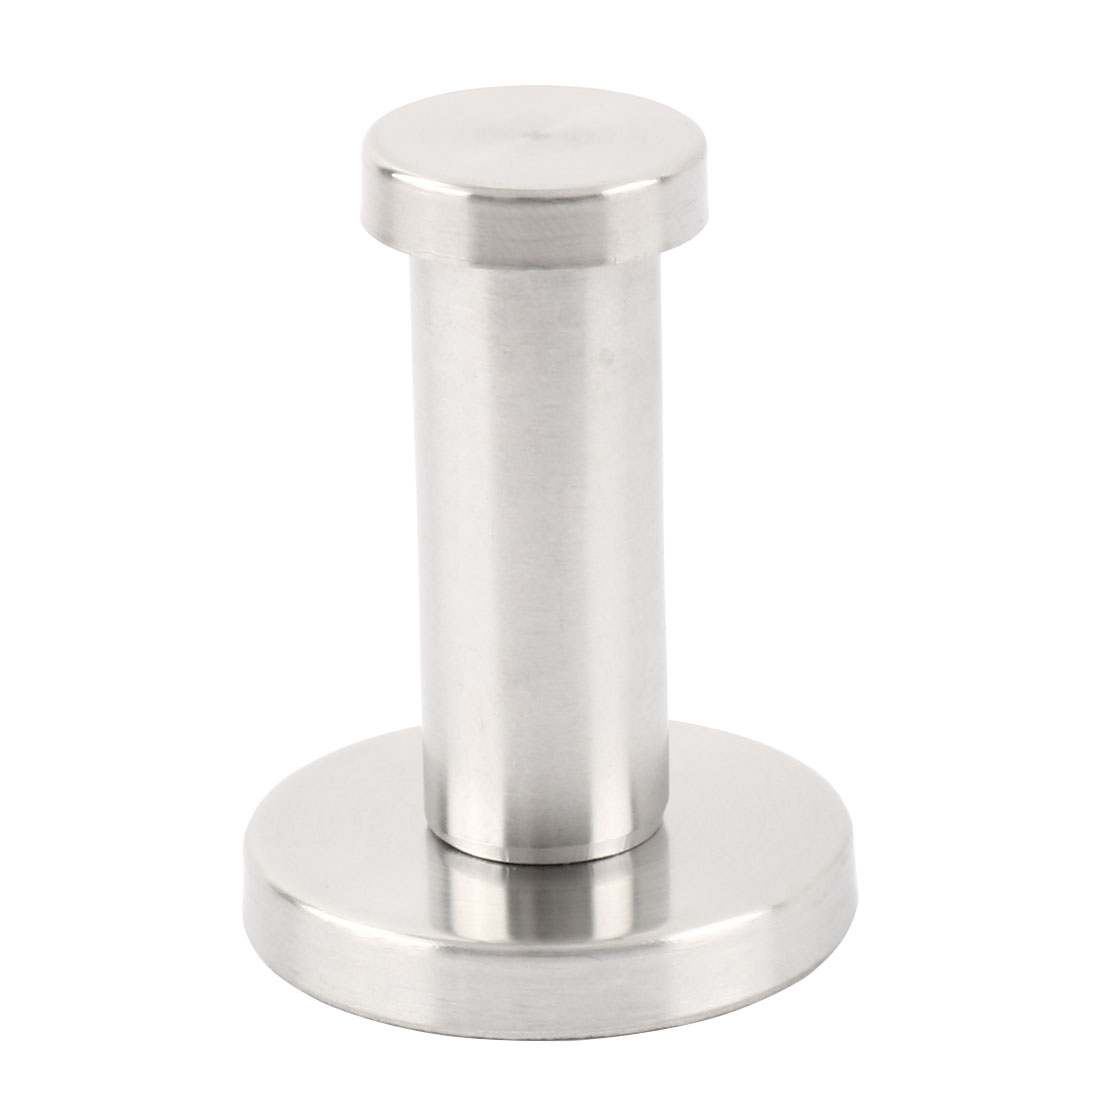 Stainless Steel Round Wall Mount Bathroom Robe Towel Coat Holder Hanger Hook